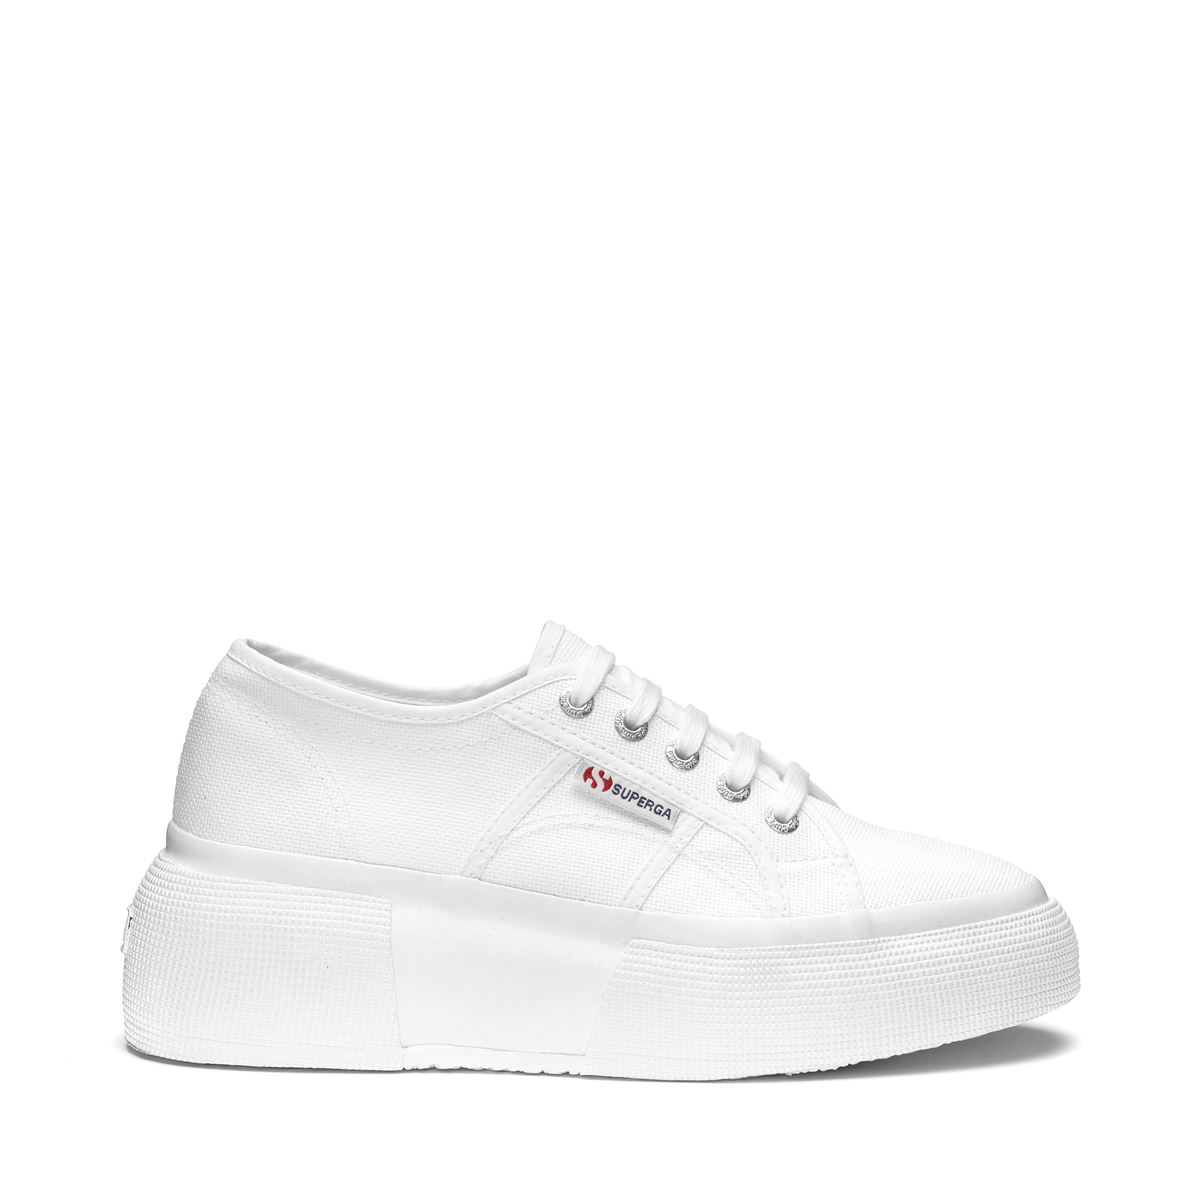 Superga Lady Shoes 2287-COTW Woman Wedge